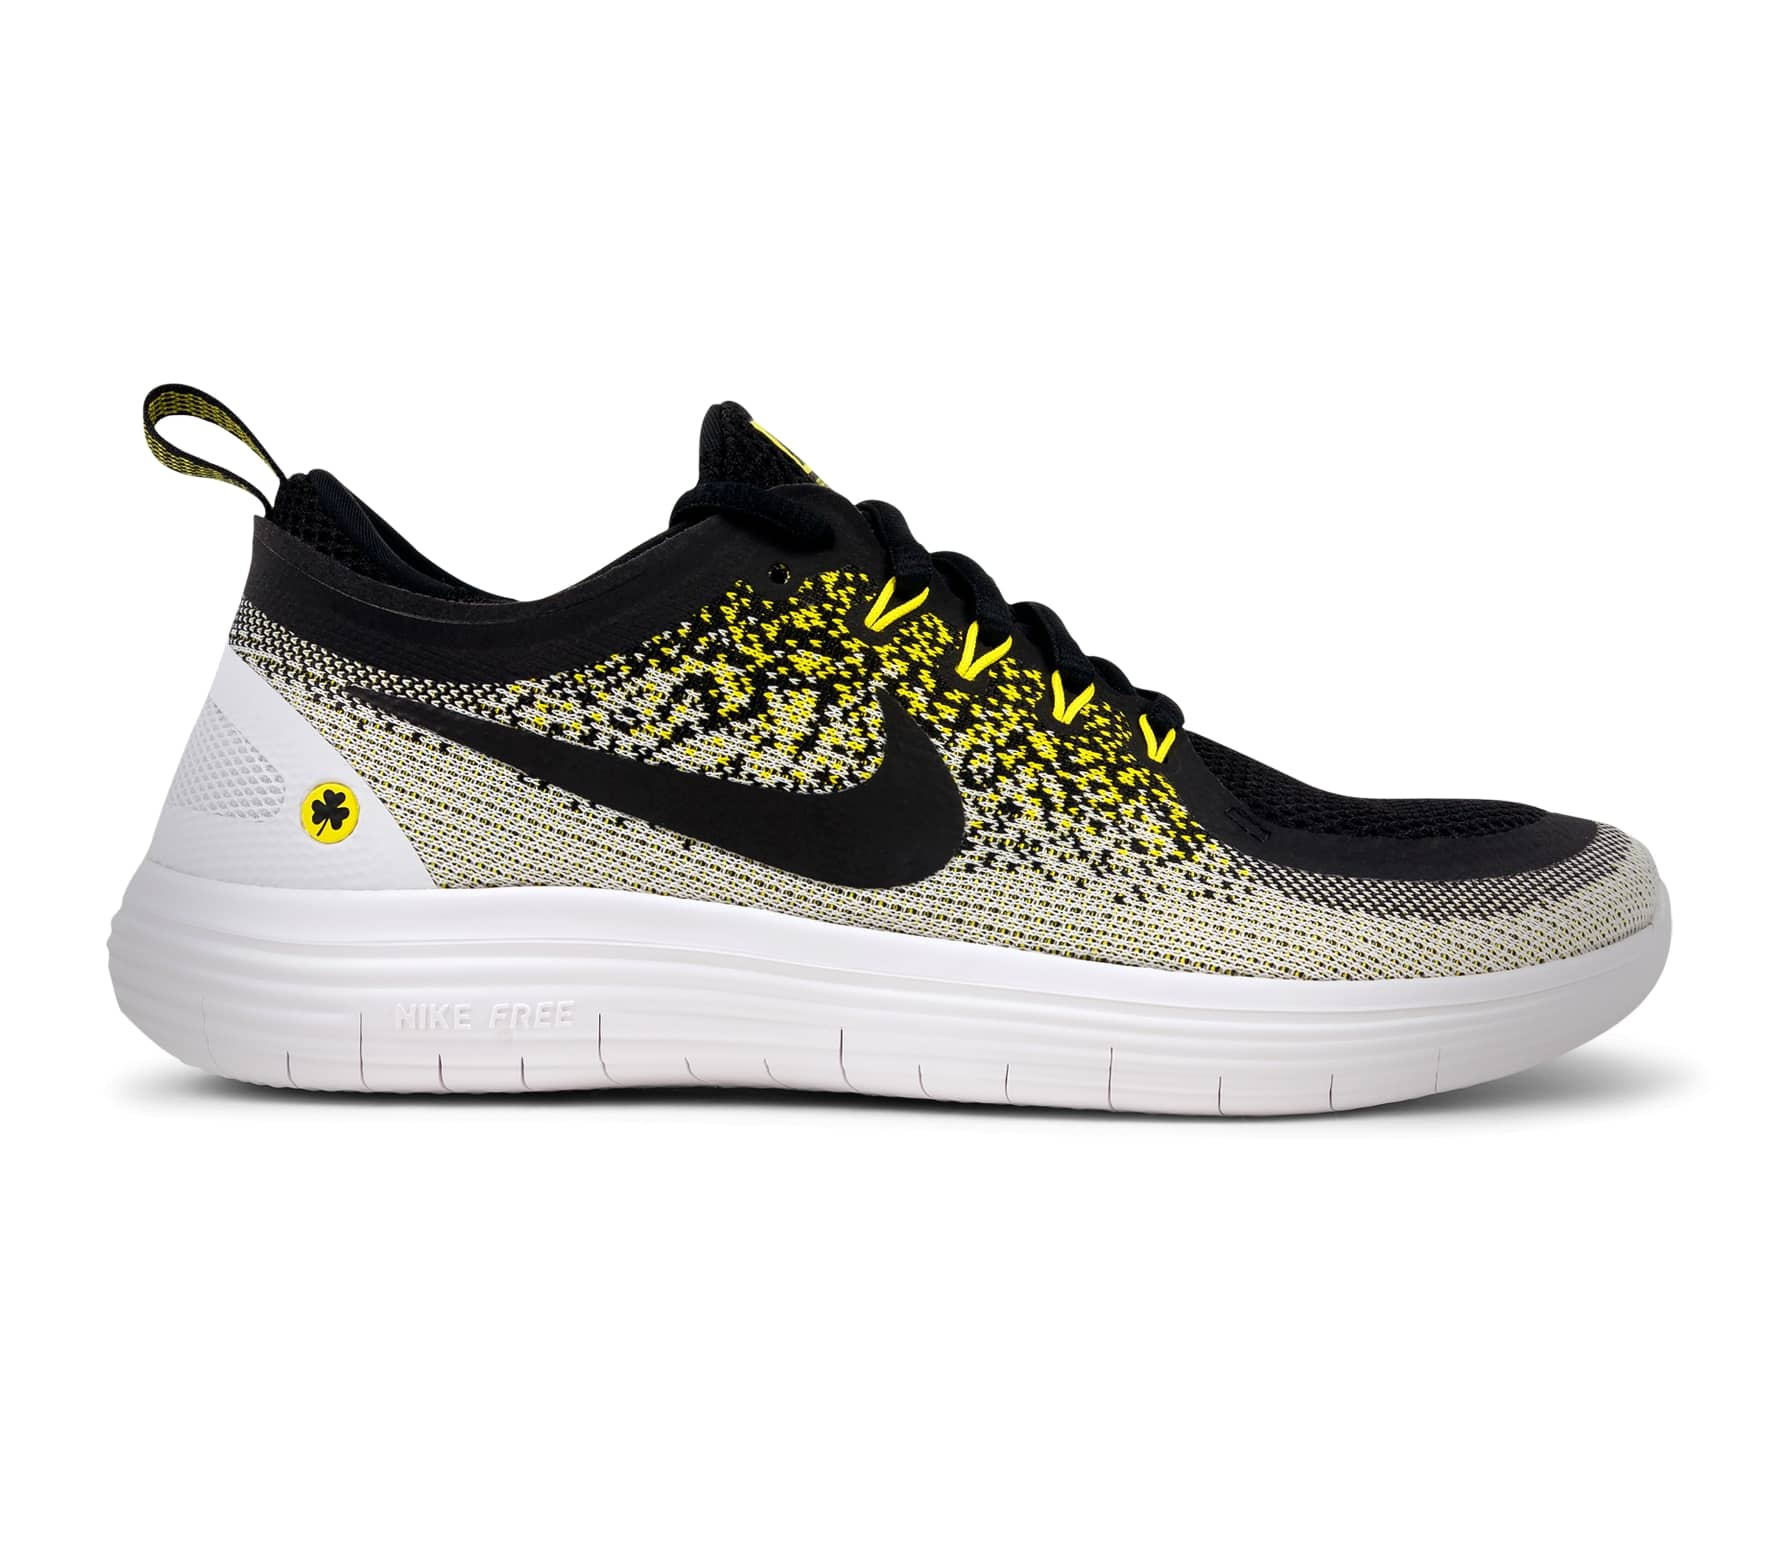 6971b6b9557712 Nike - Free RN Distance 2 BSTN women s running shoes (black yellow ...